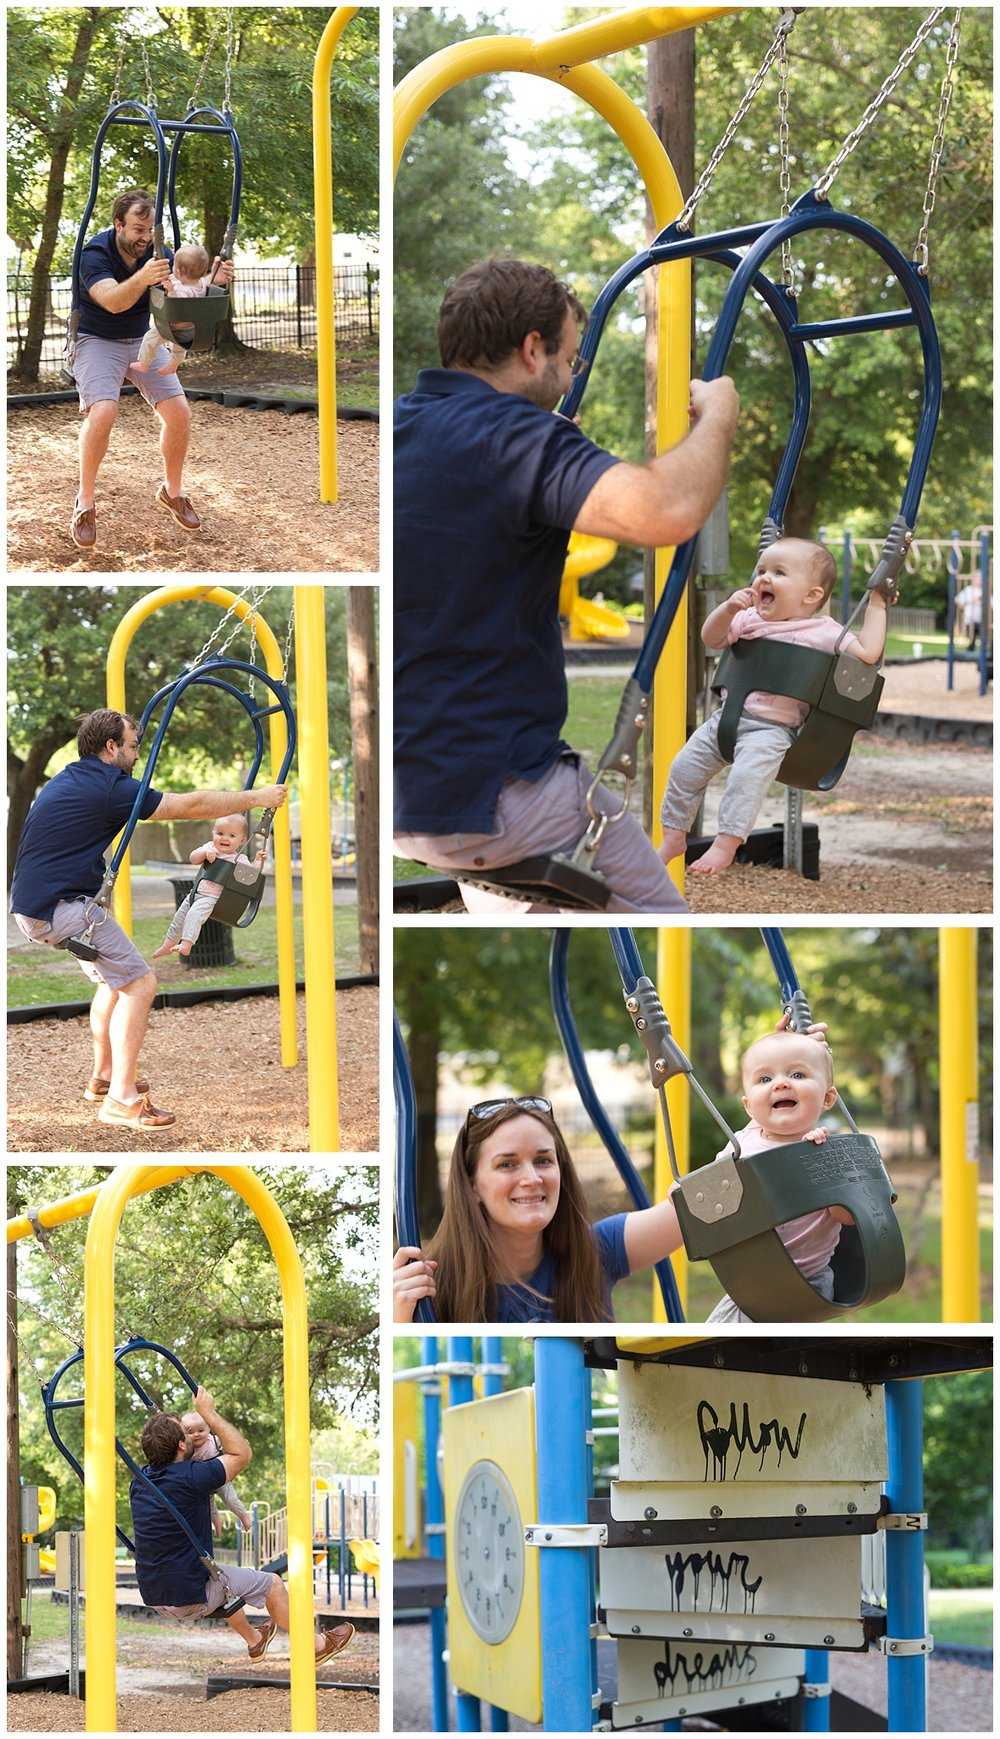 baby girl swinging with parents at Little Children's Park in Ocean Springs